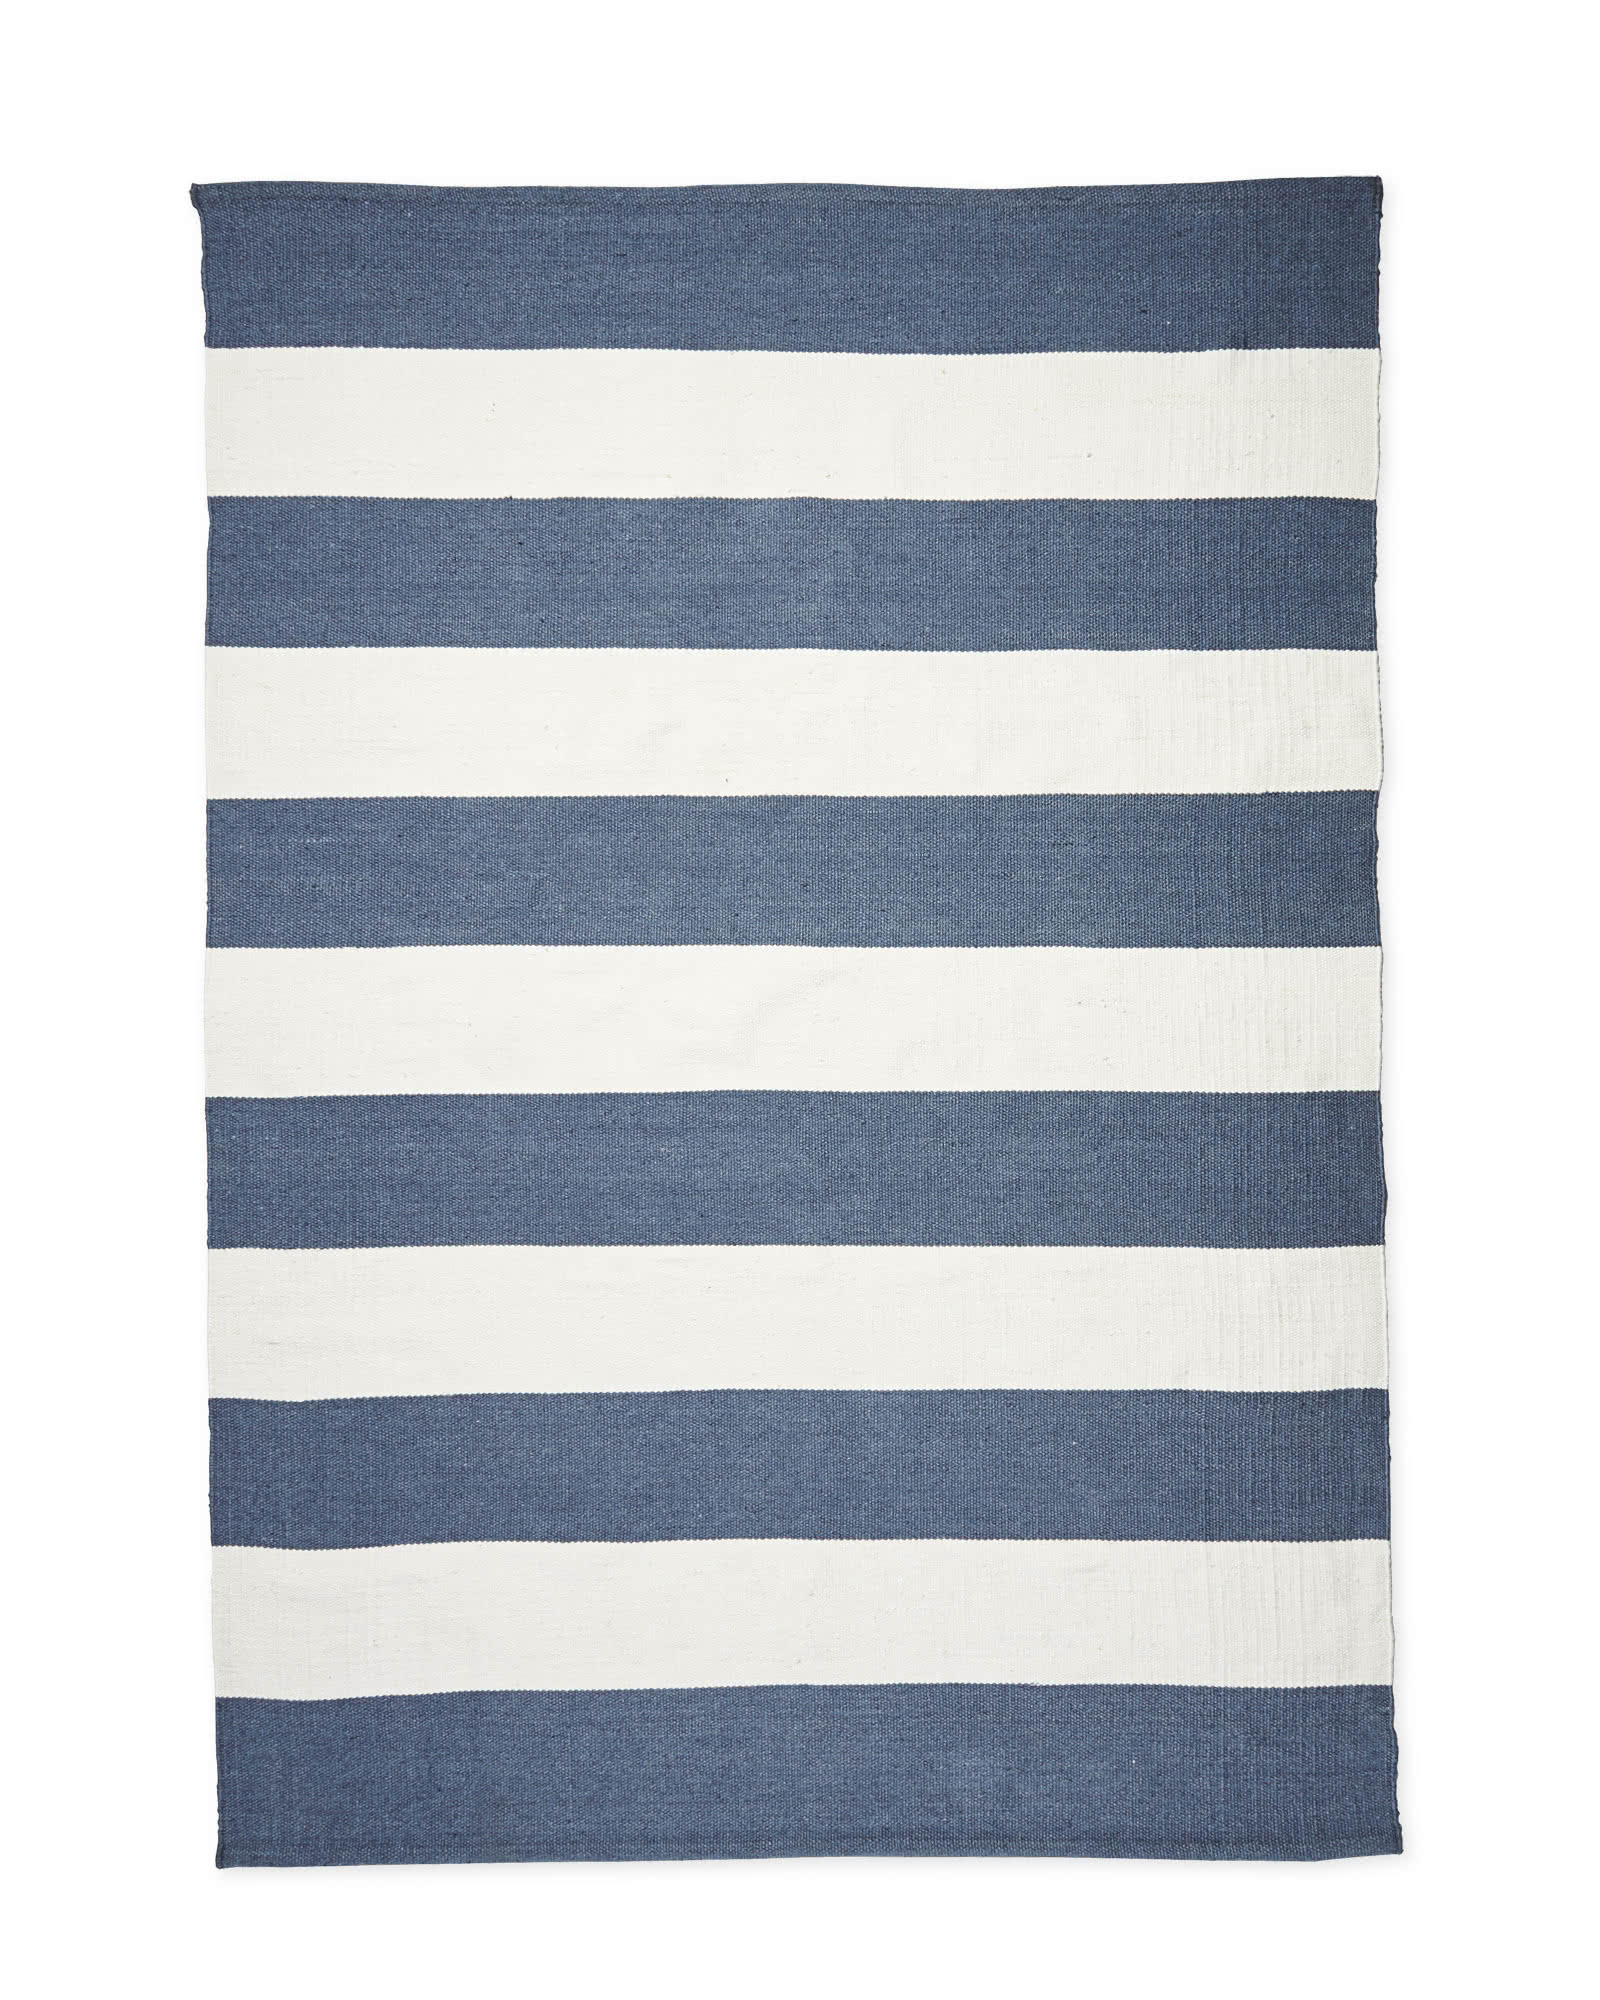 Lido Stripe Outdoor Rug,